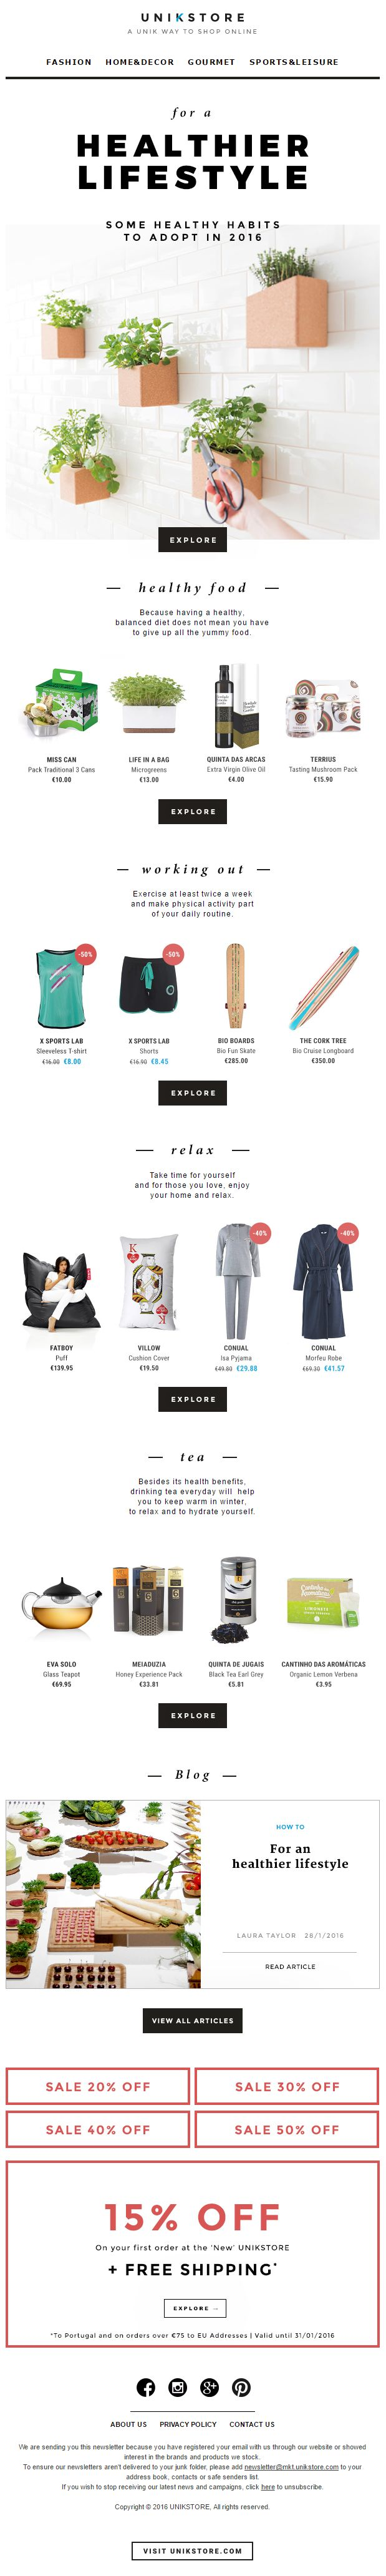 For a healthier lifestyle + 15% off + Free shipping | 2016 January